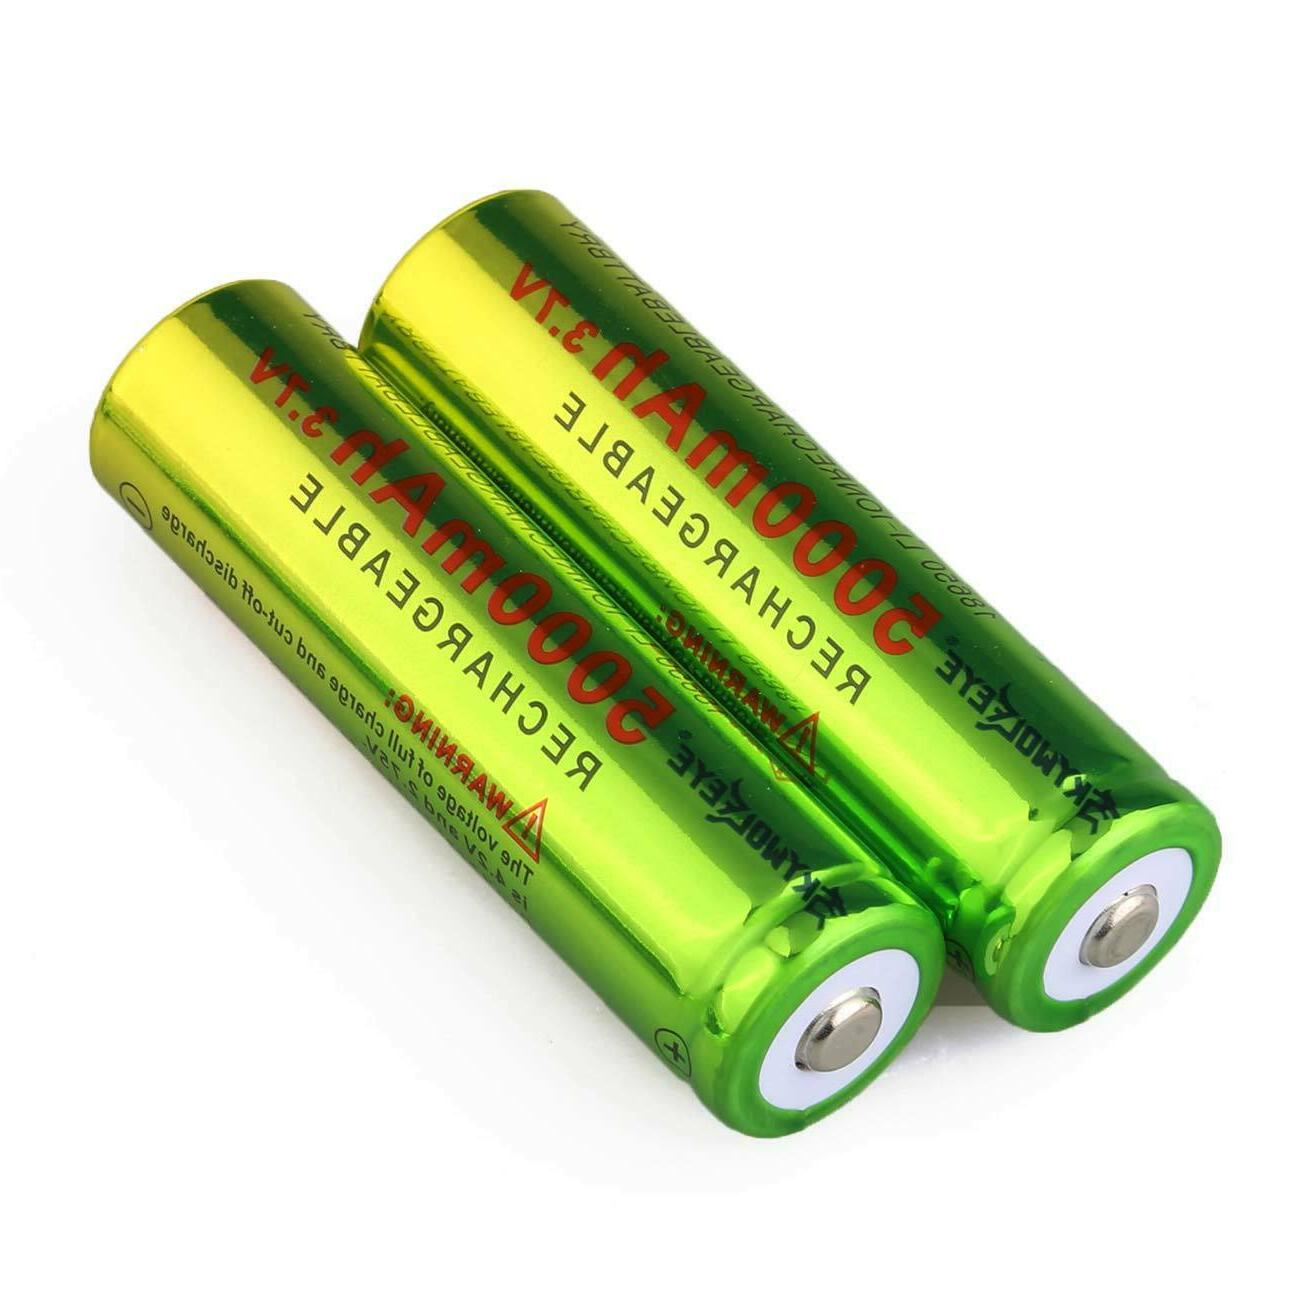 Lot 18650 Battery 5000mAh Li-ion Rechargeable Batteries USA